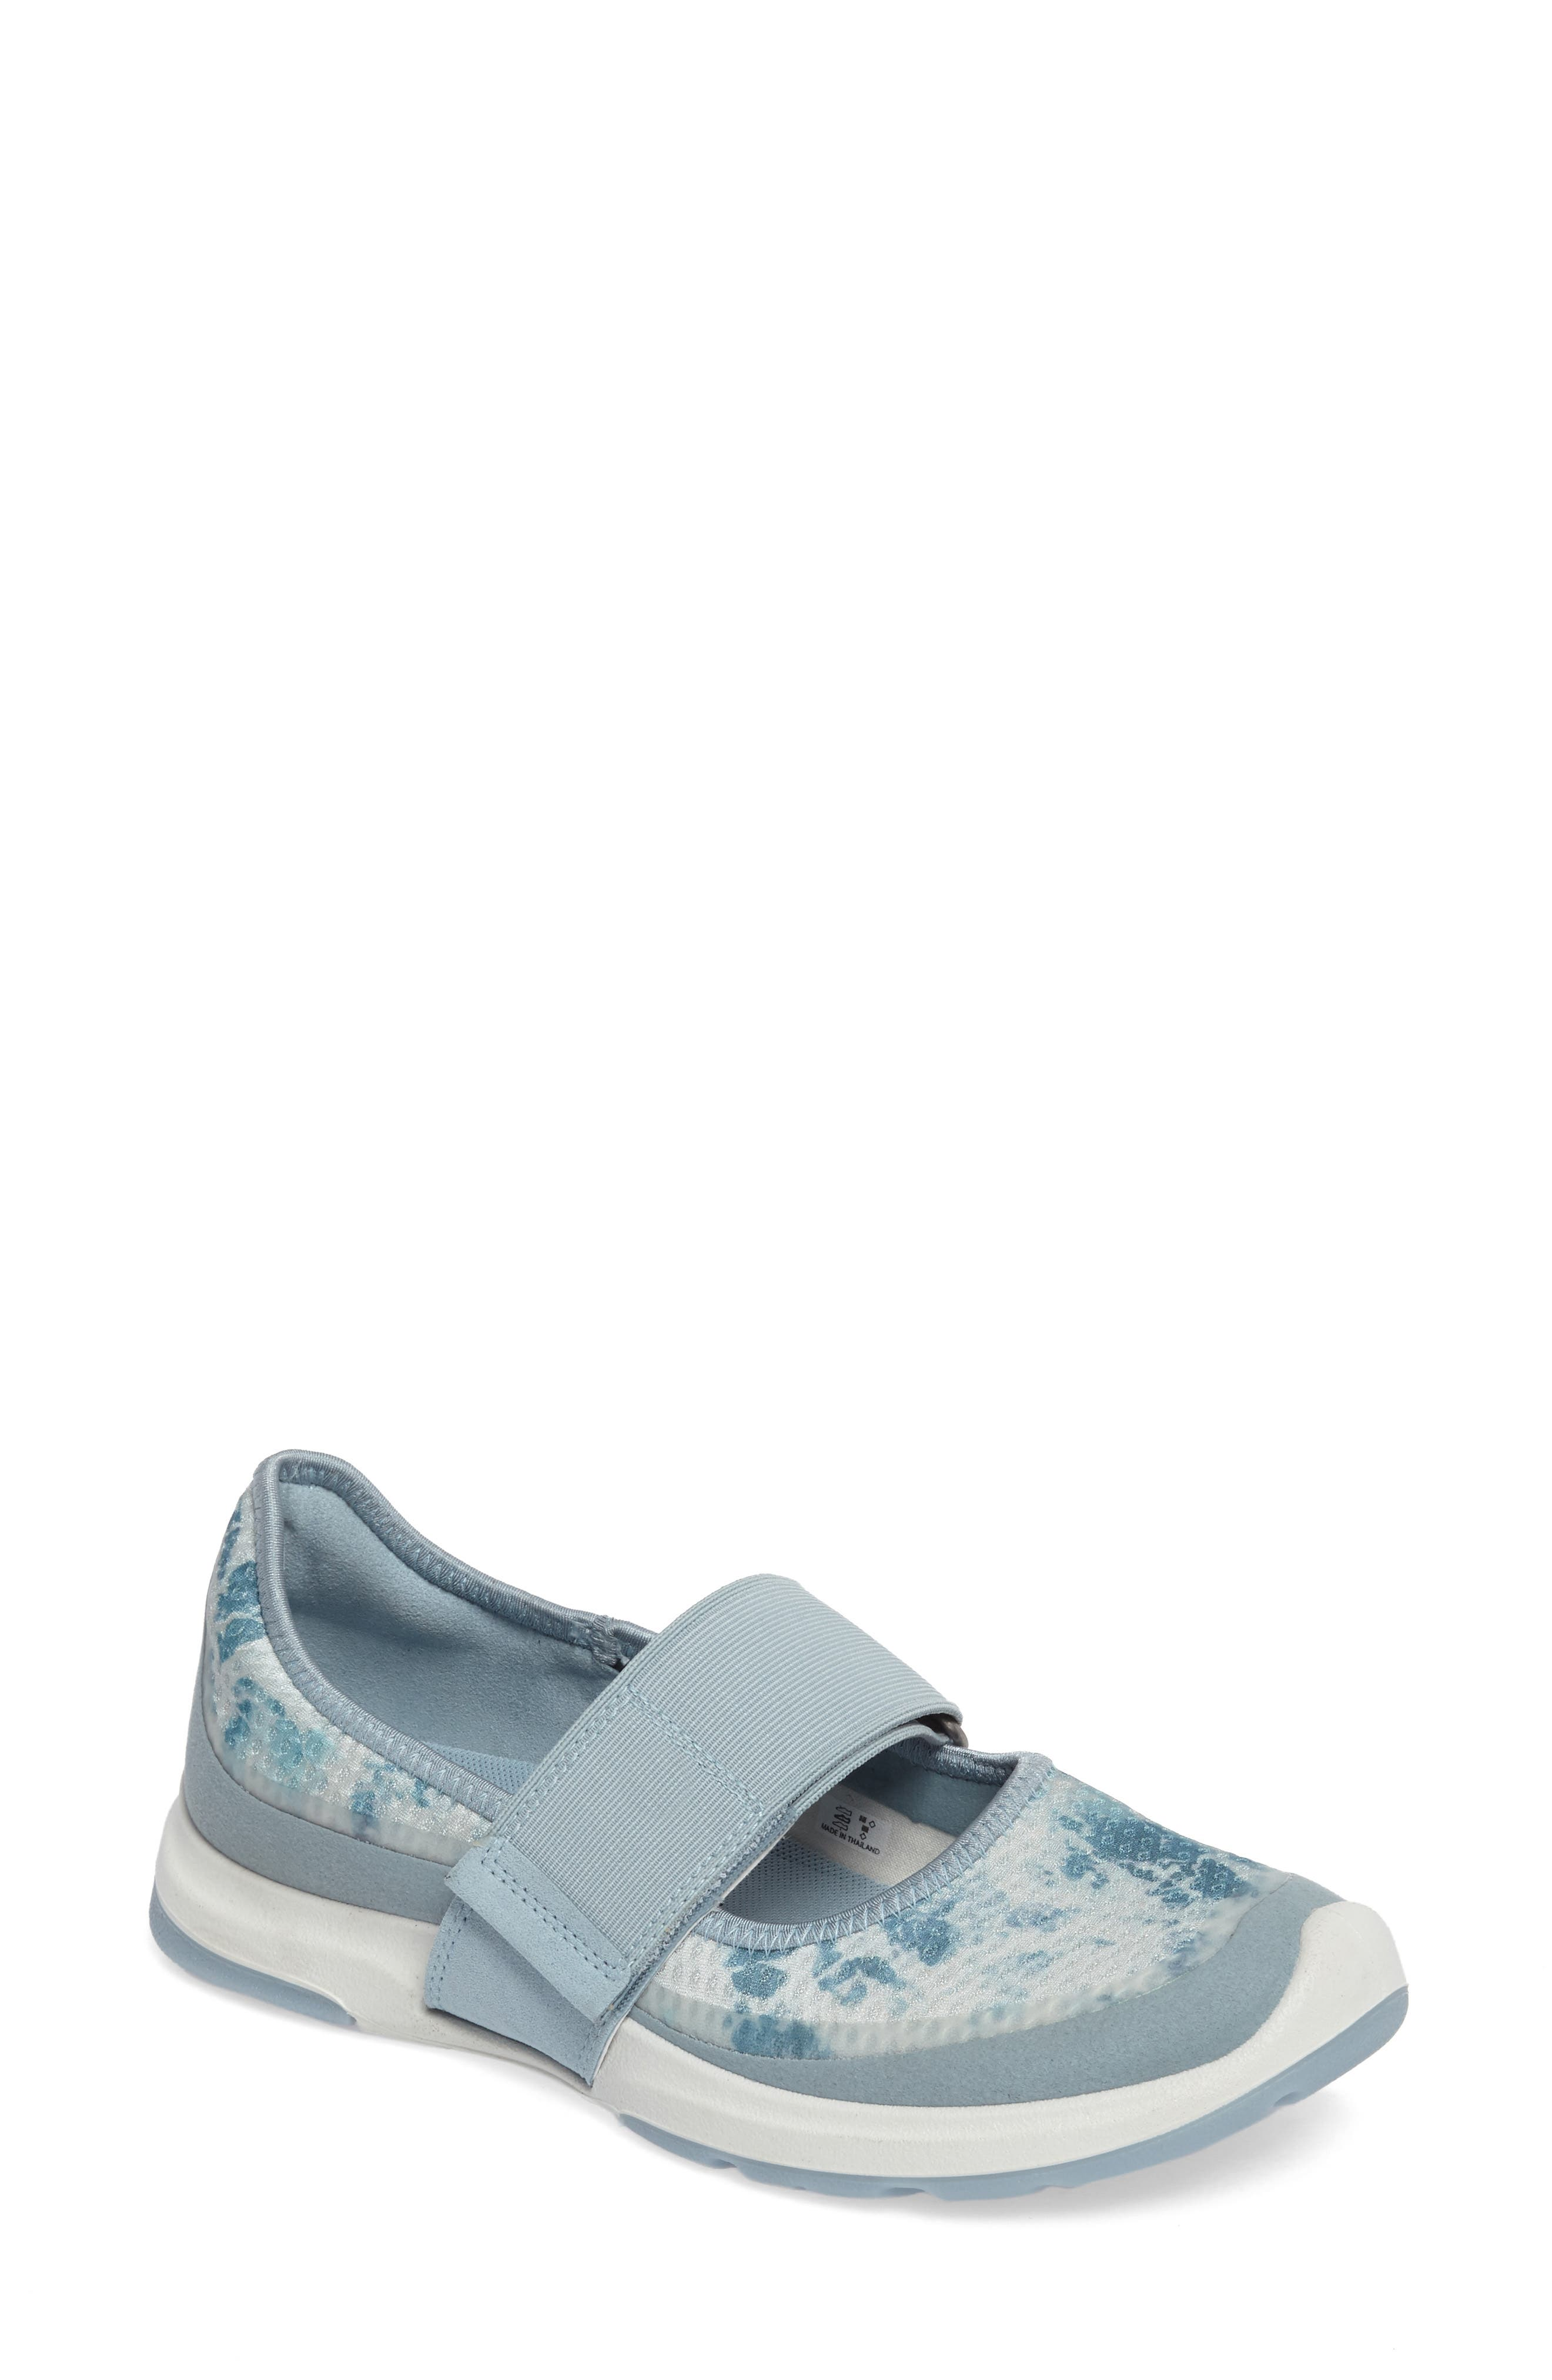 BIOM Amrap Mary Jane Band Flat,                         Main,                         color, Arona/ Biscaya Fabric